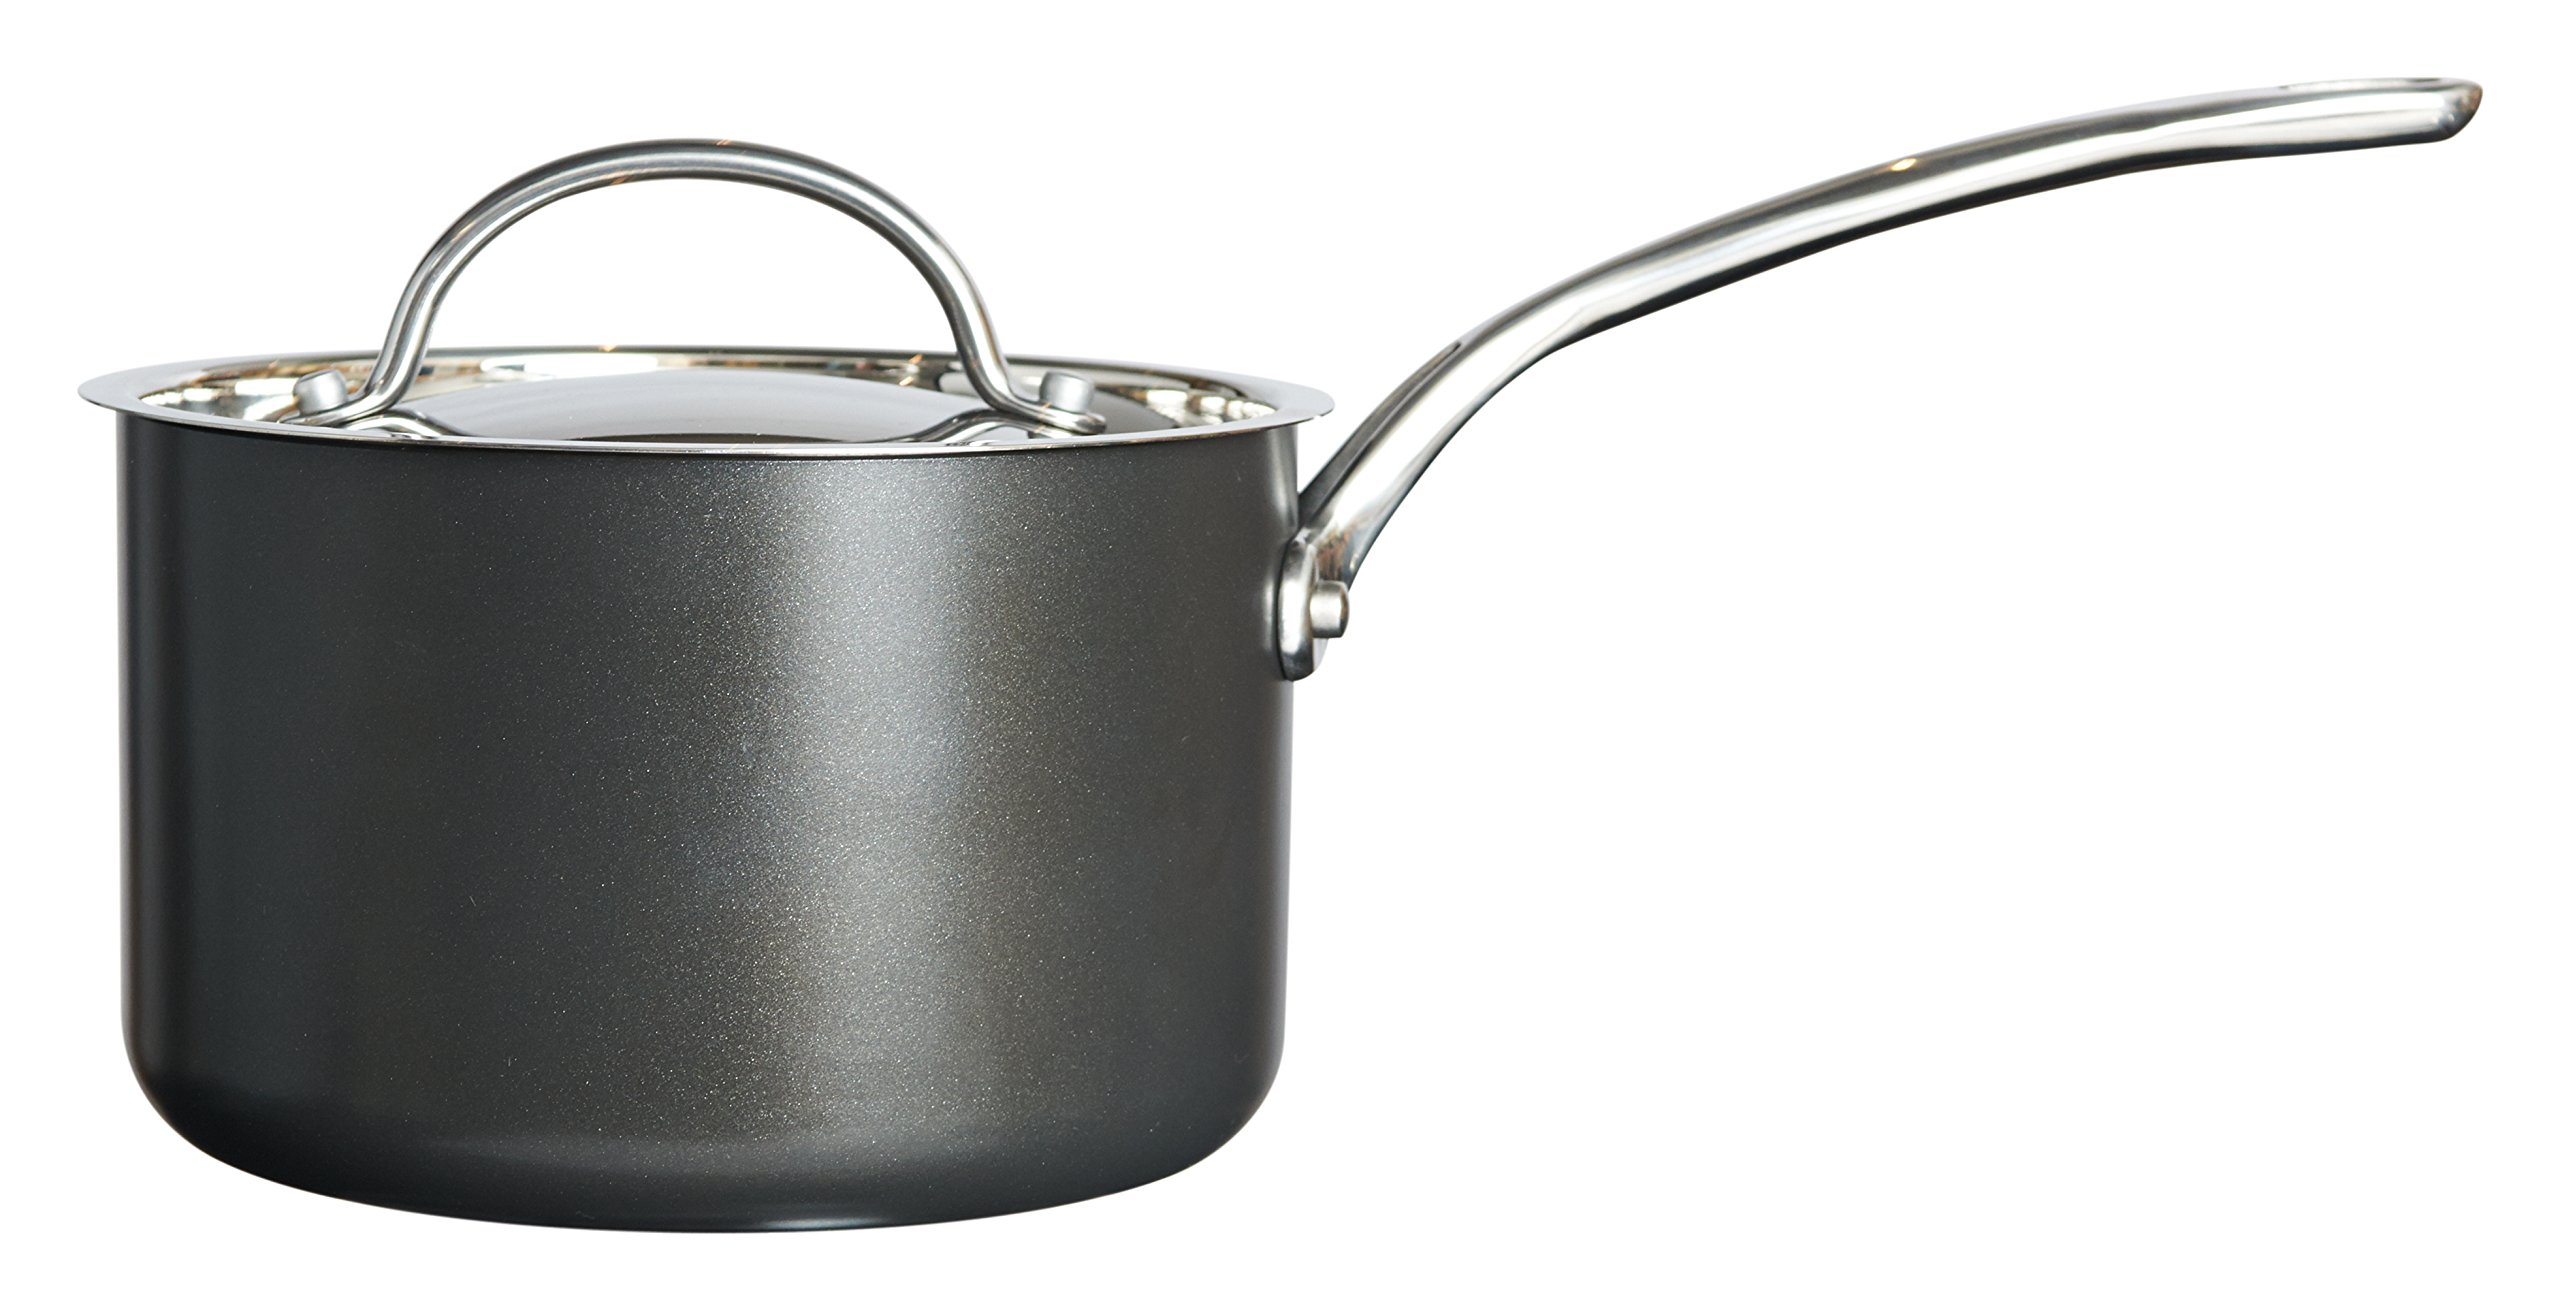 Raymond Blanc Simply Perfect 18 Cm Saucepan With Lid - Black by Raymond Blanc